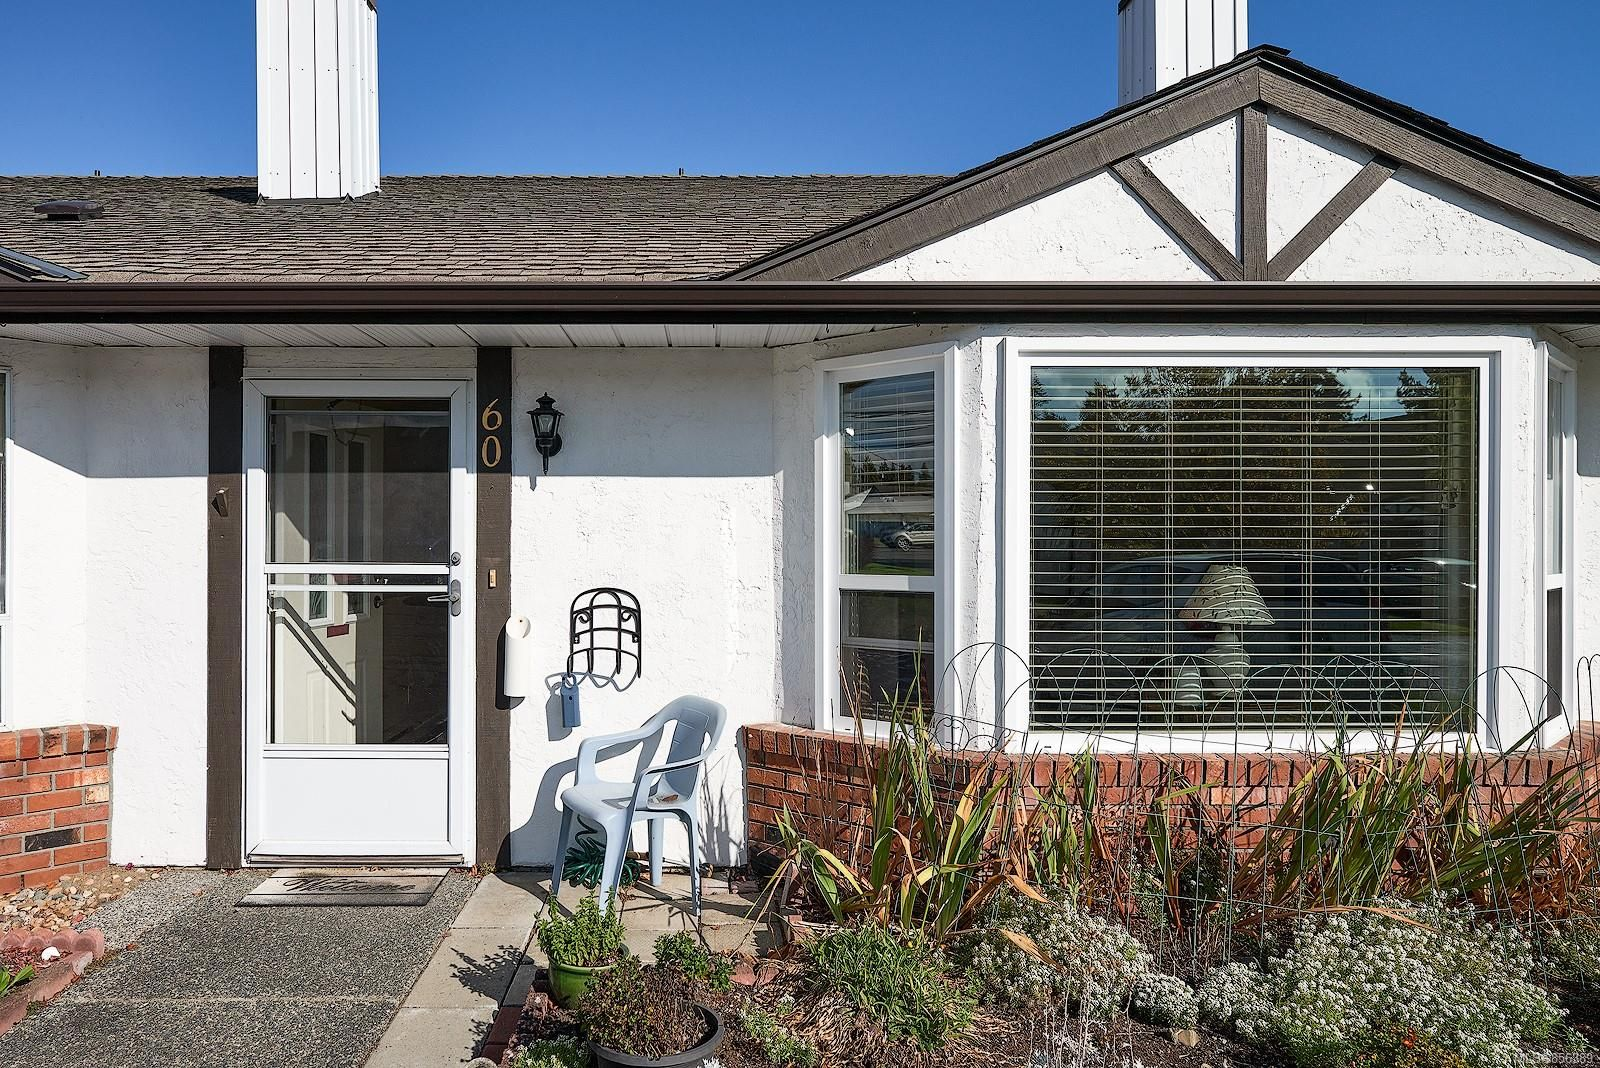 Main Photo: 60 120 N Finholm St in : PQ Parksville Row/Townhouse for sale (Parksville/Qualicum)  : MLS®# 856389